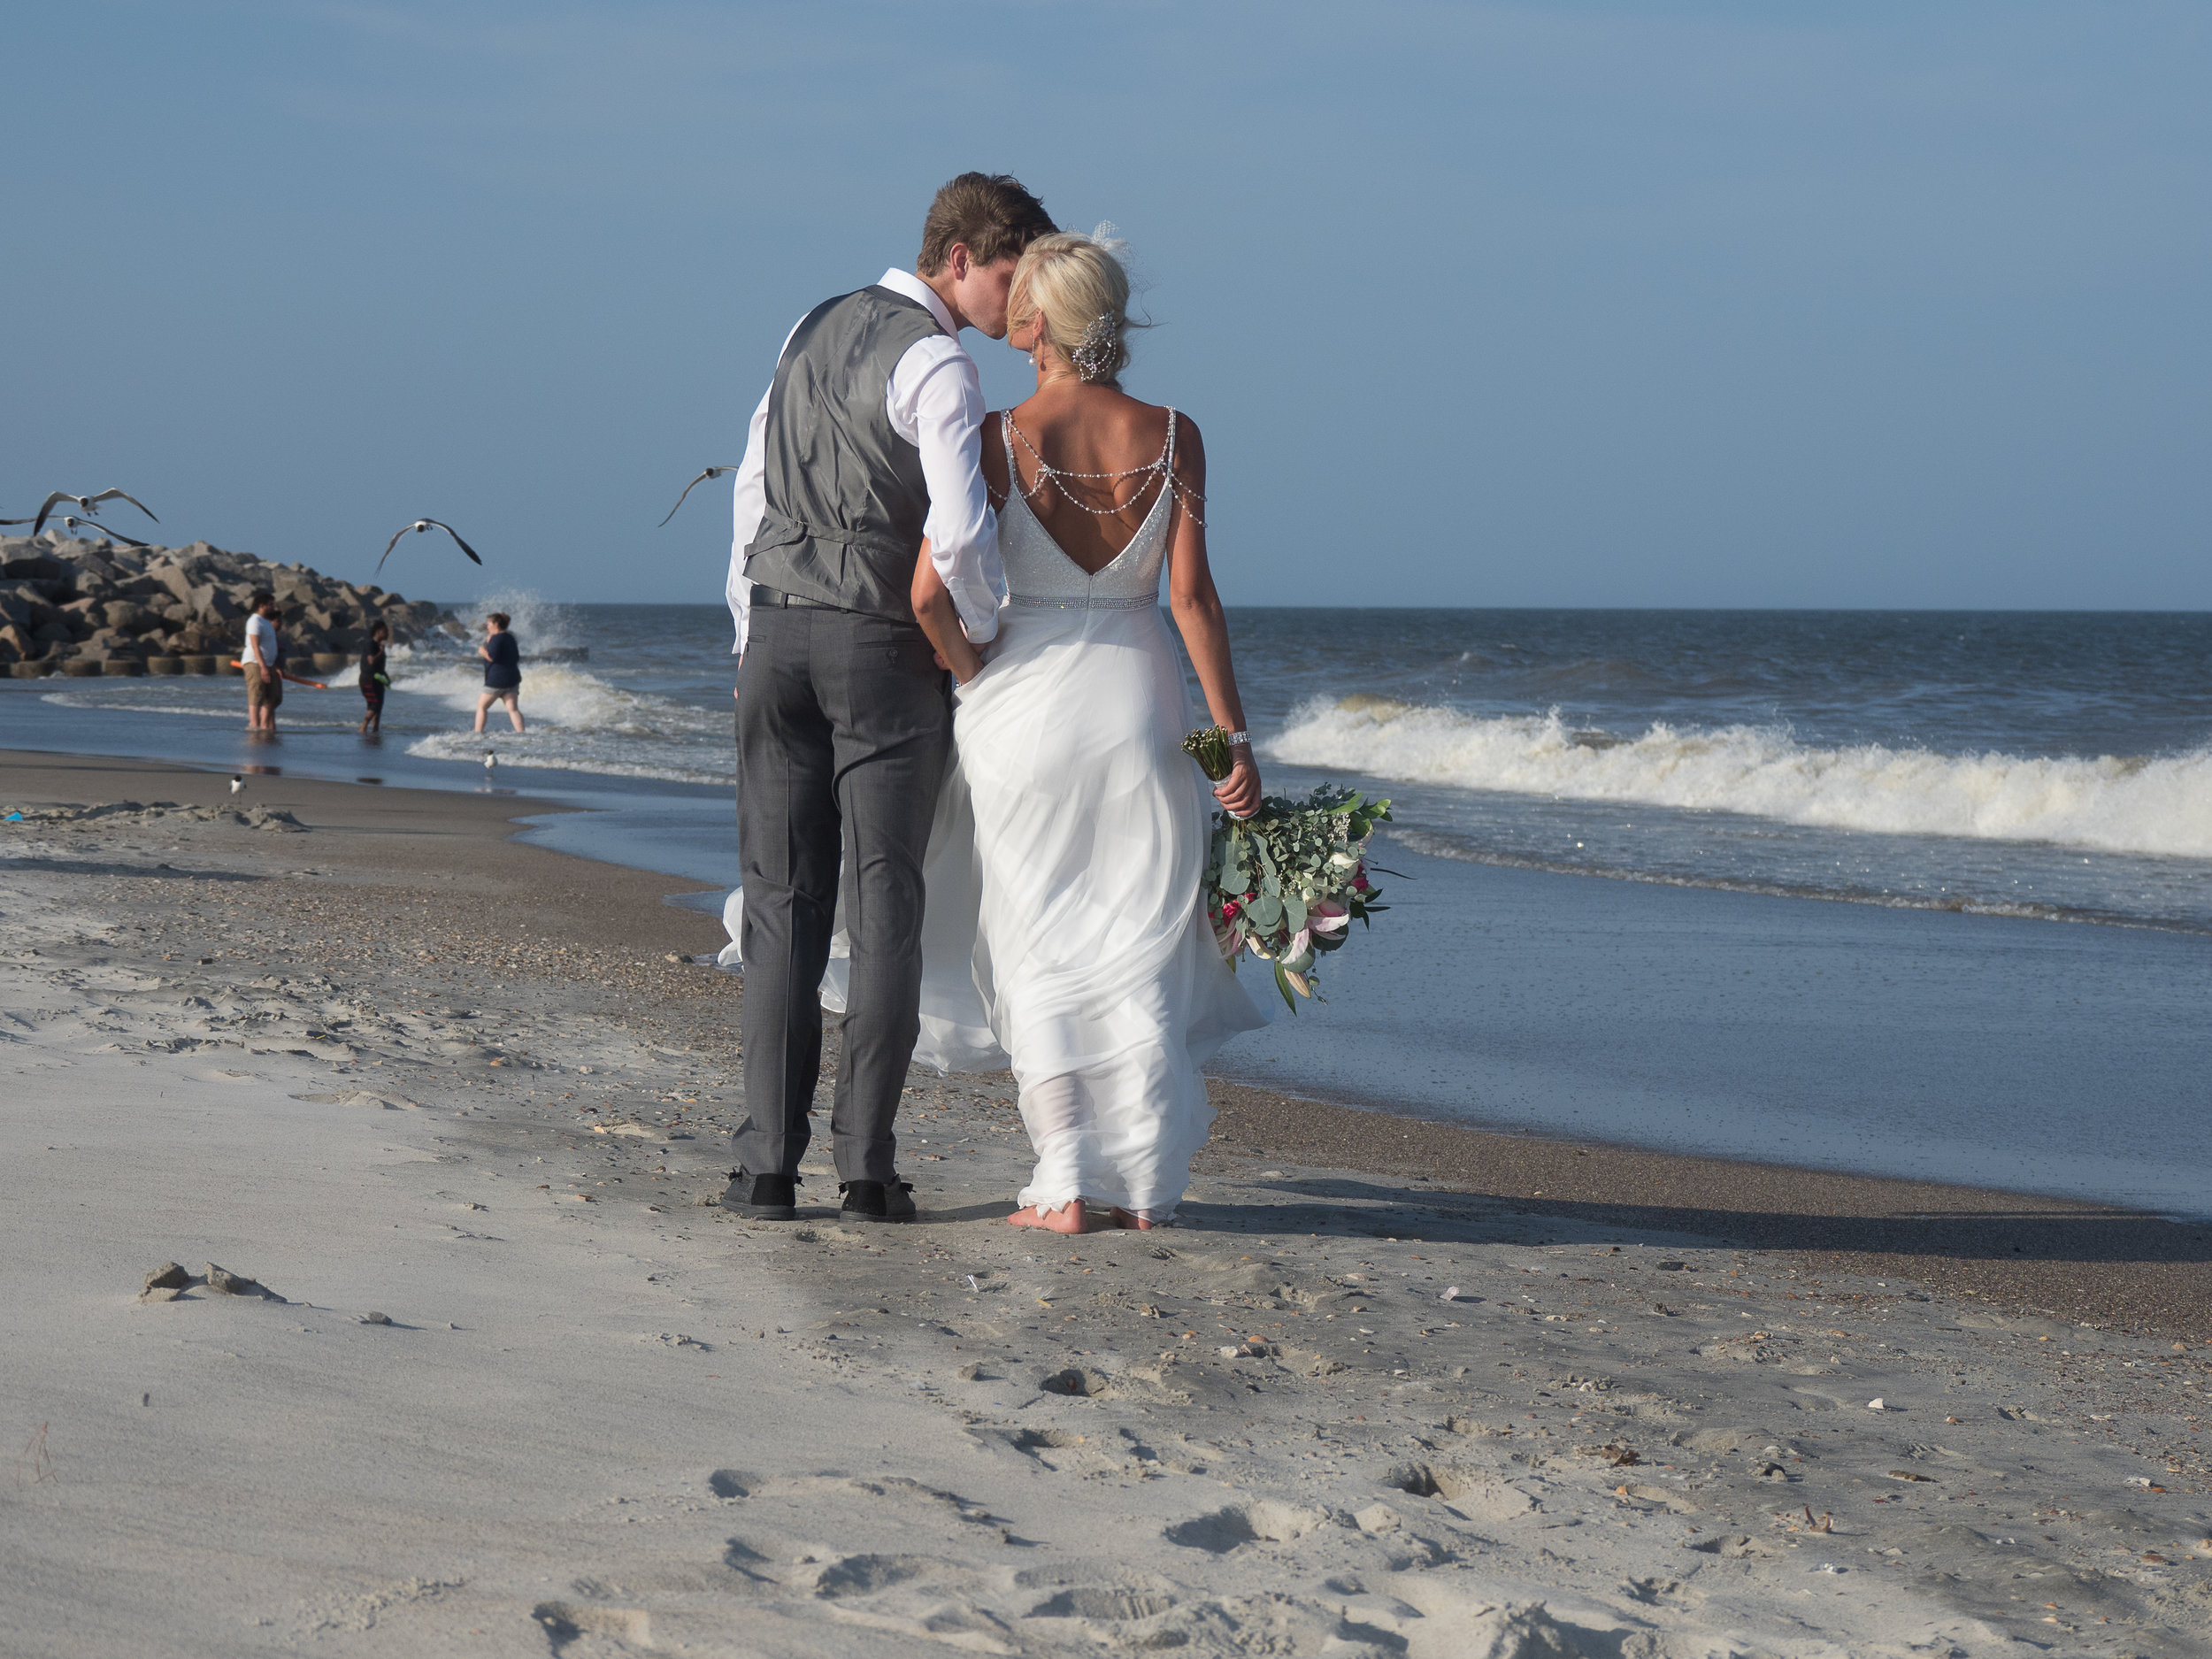 - Bride and groom walking on the beach stop for a quick kiss on Fort Fisher Beach, NC. Ocean in background with seagulls. Billy Beach Photography.